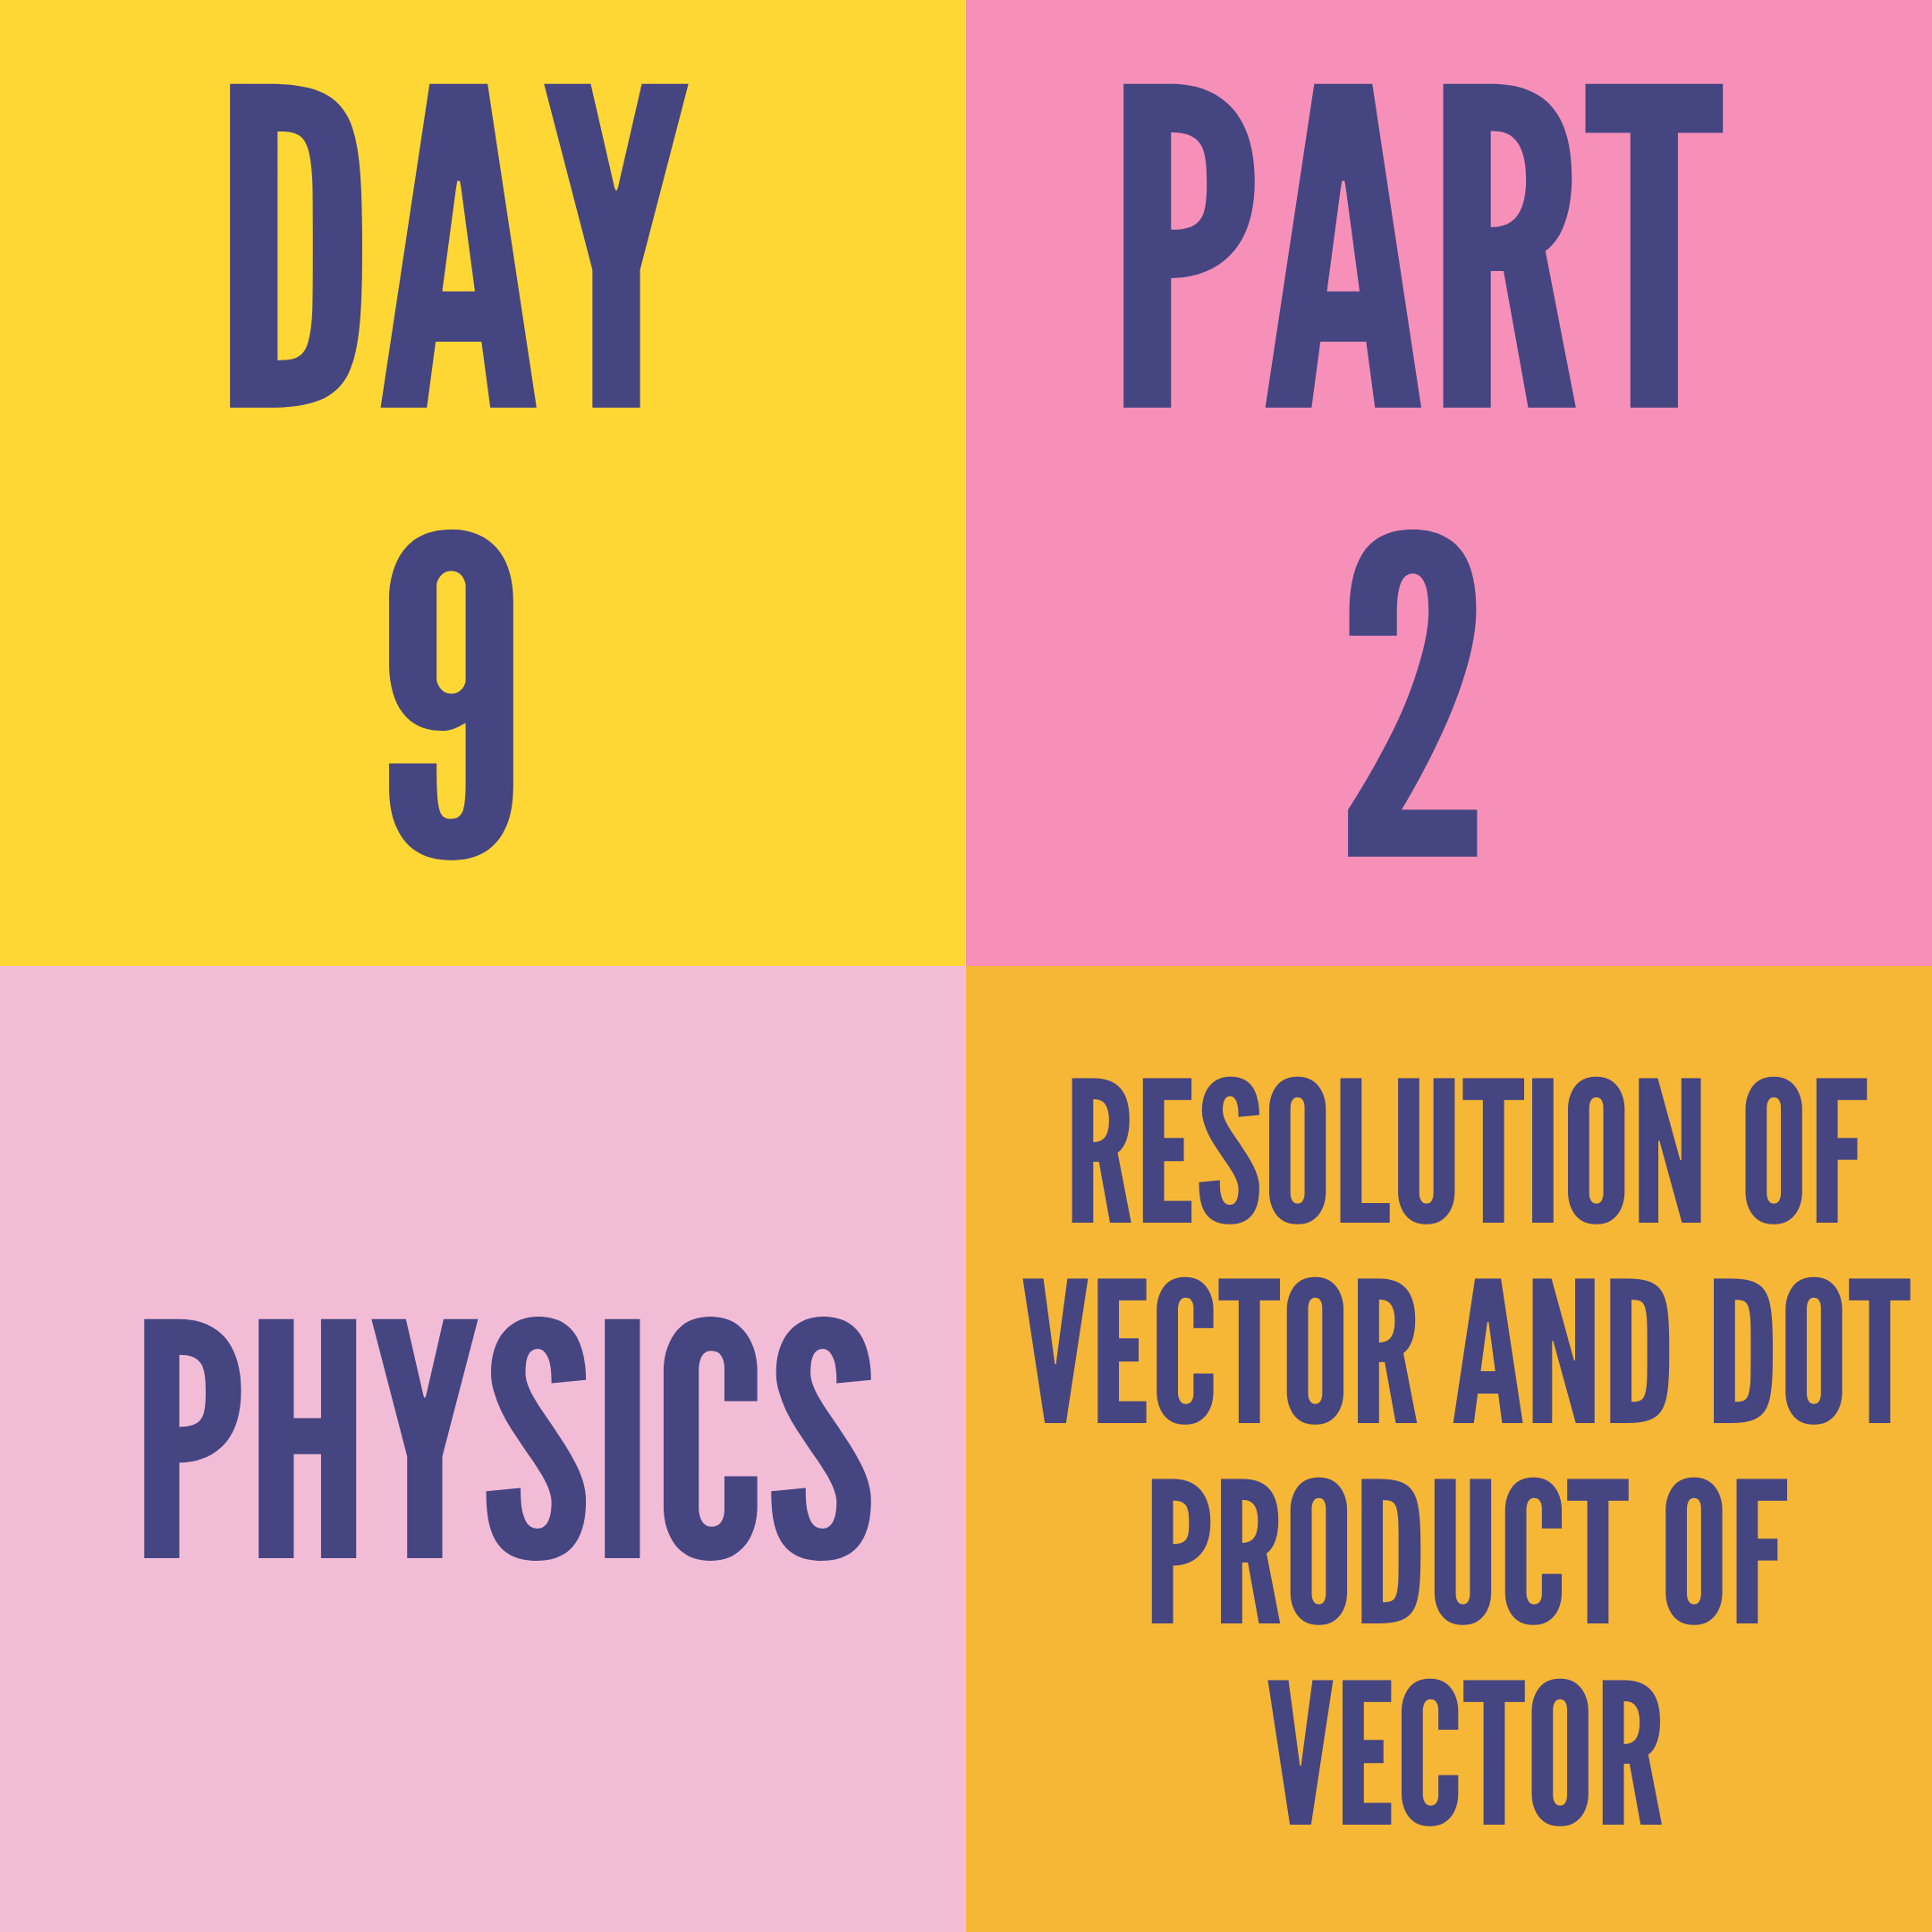 DAY-9 PART-2 RESOLUTION OF VECTOR AND DOT PRODUCT OF VECTOR